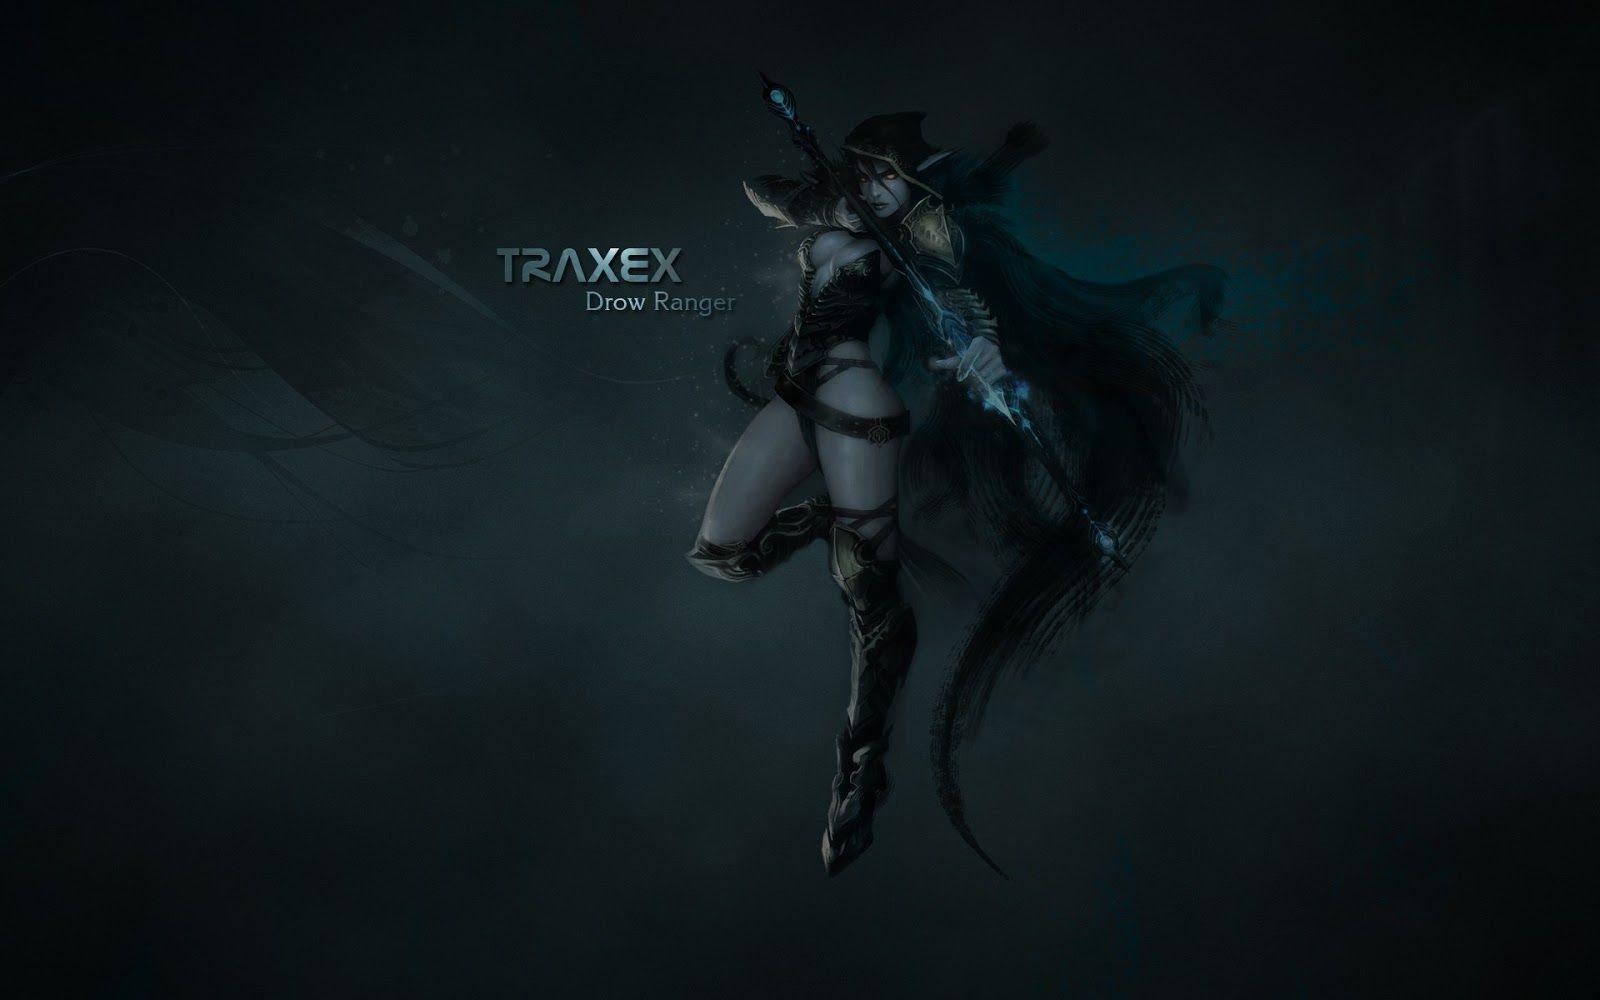 Wallpapers Traxex Hd Wallpaper Cave